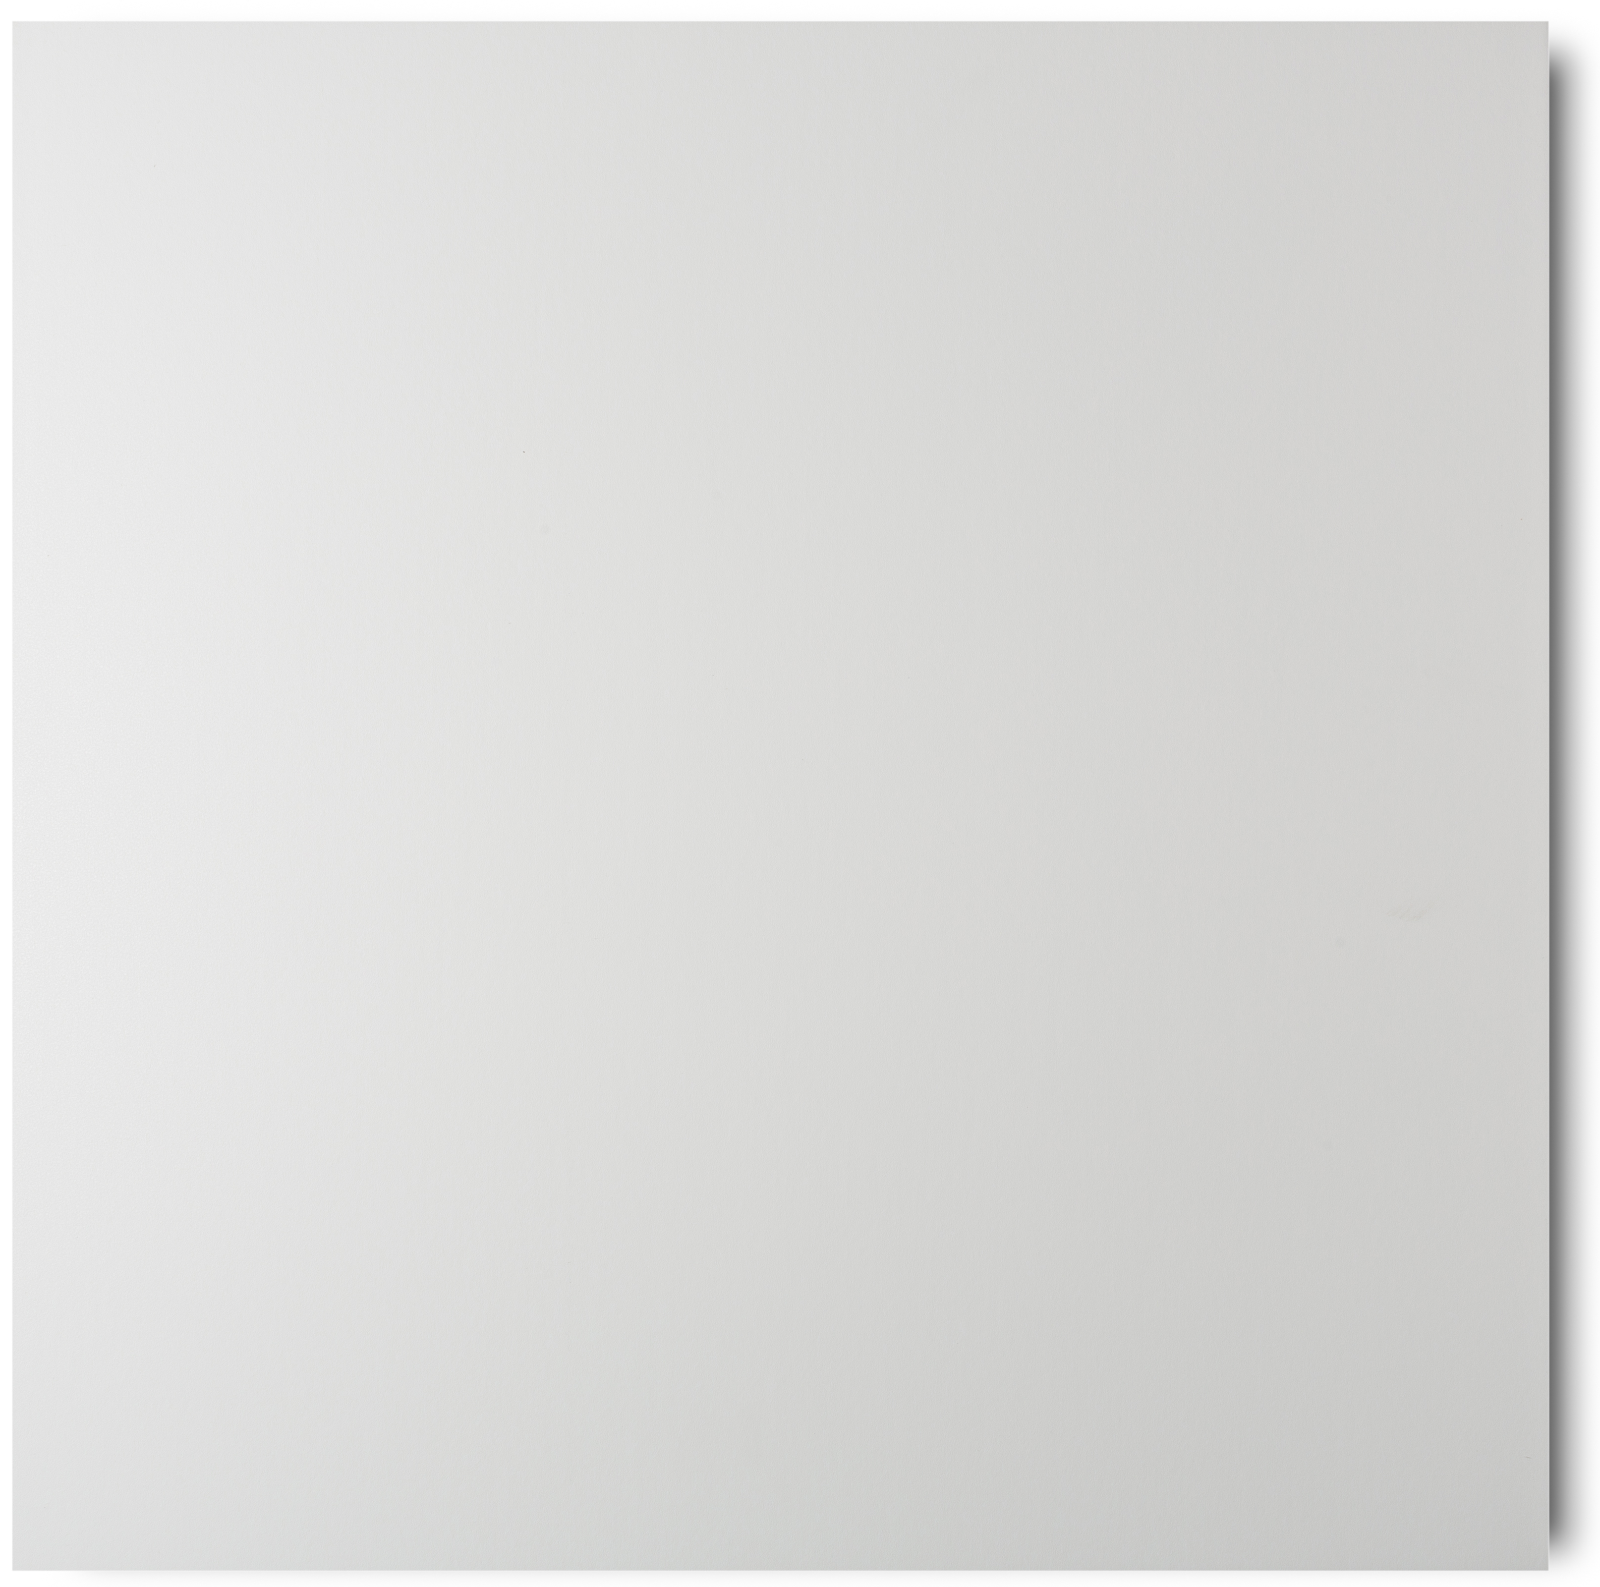 British Gypsum Satin Spar 1200x600mm Square Edge Ceiling Tiles 10//pk Wipeable